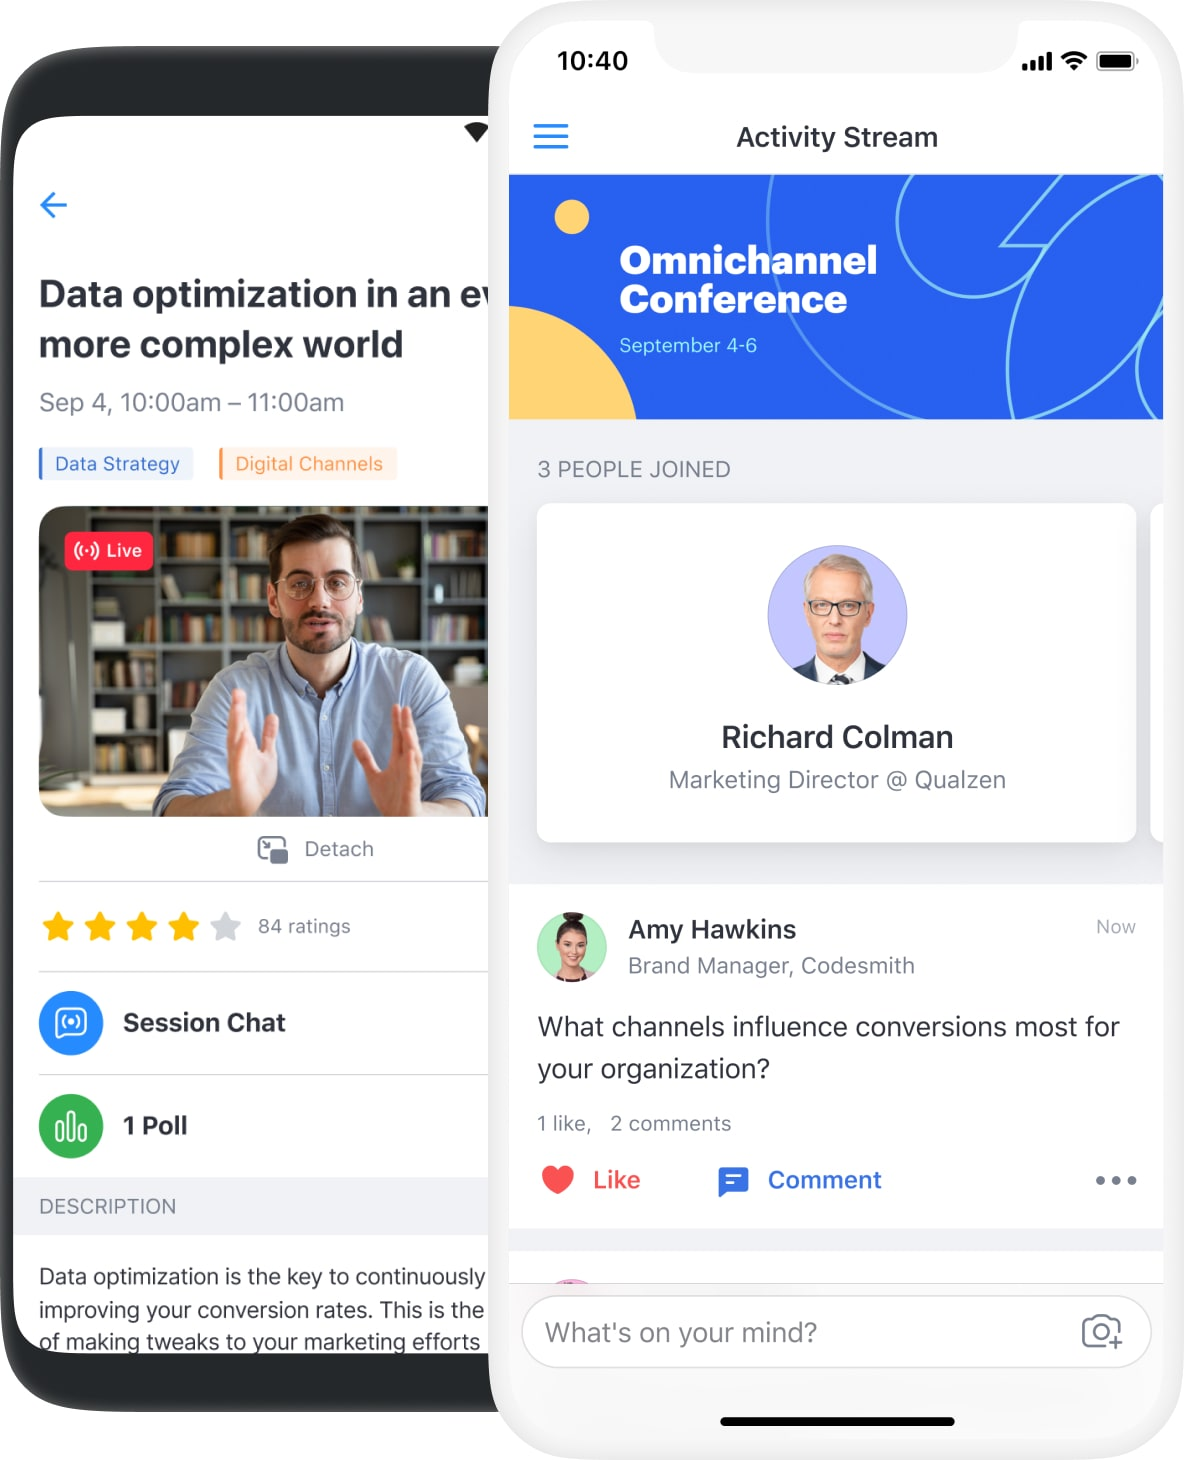 Attendify's mobile event apps connect your entire virtual community from anywhere